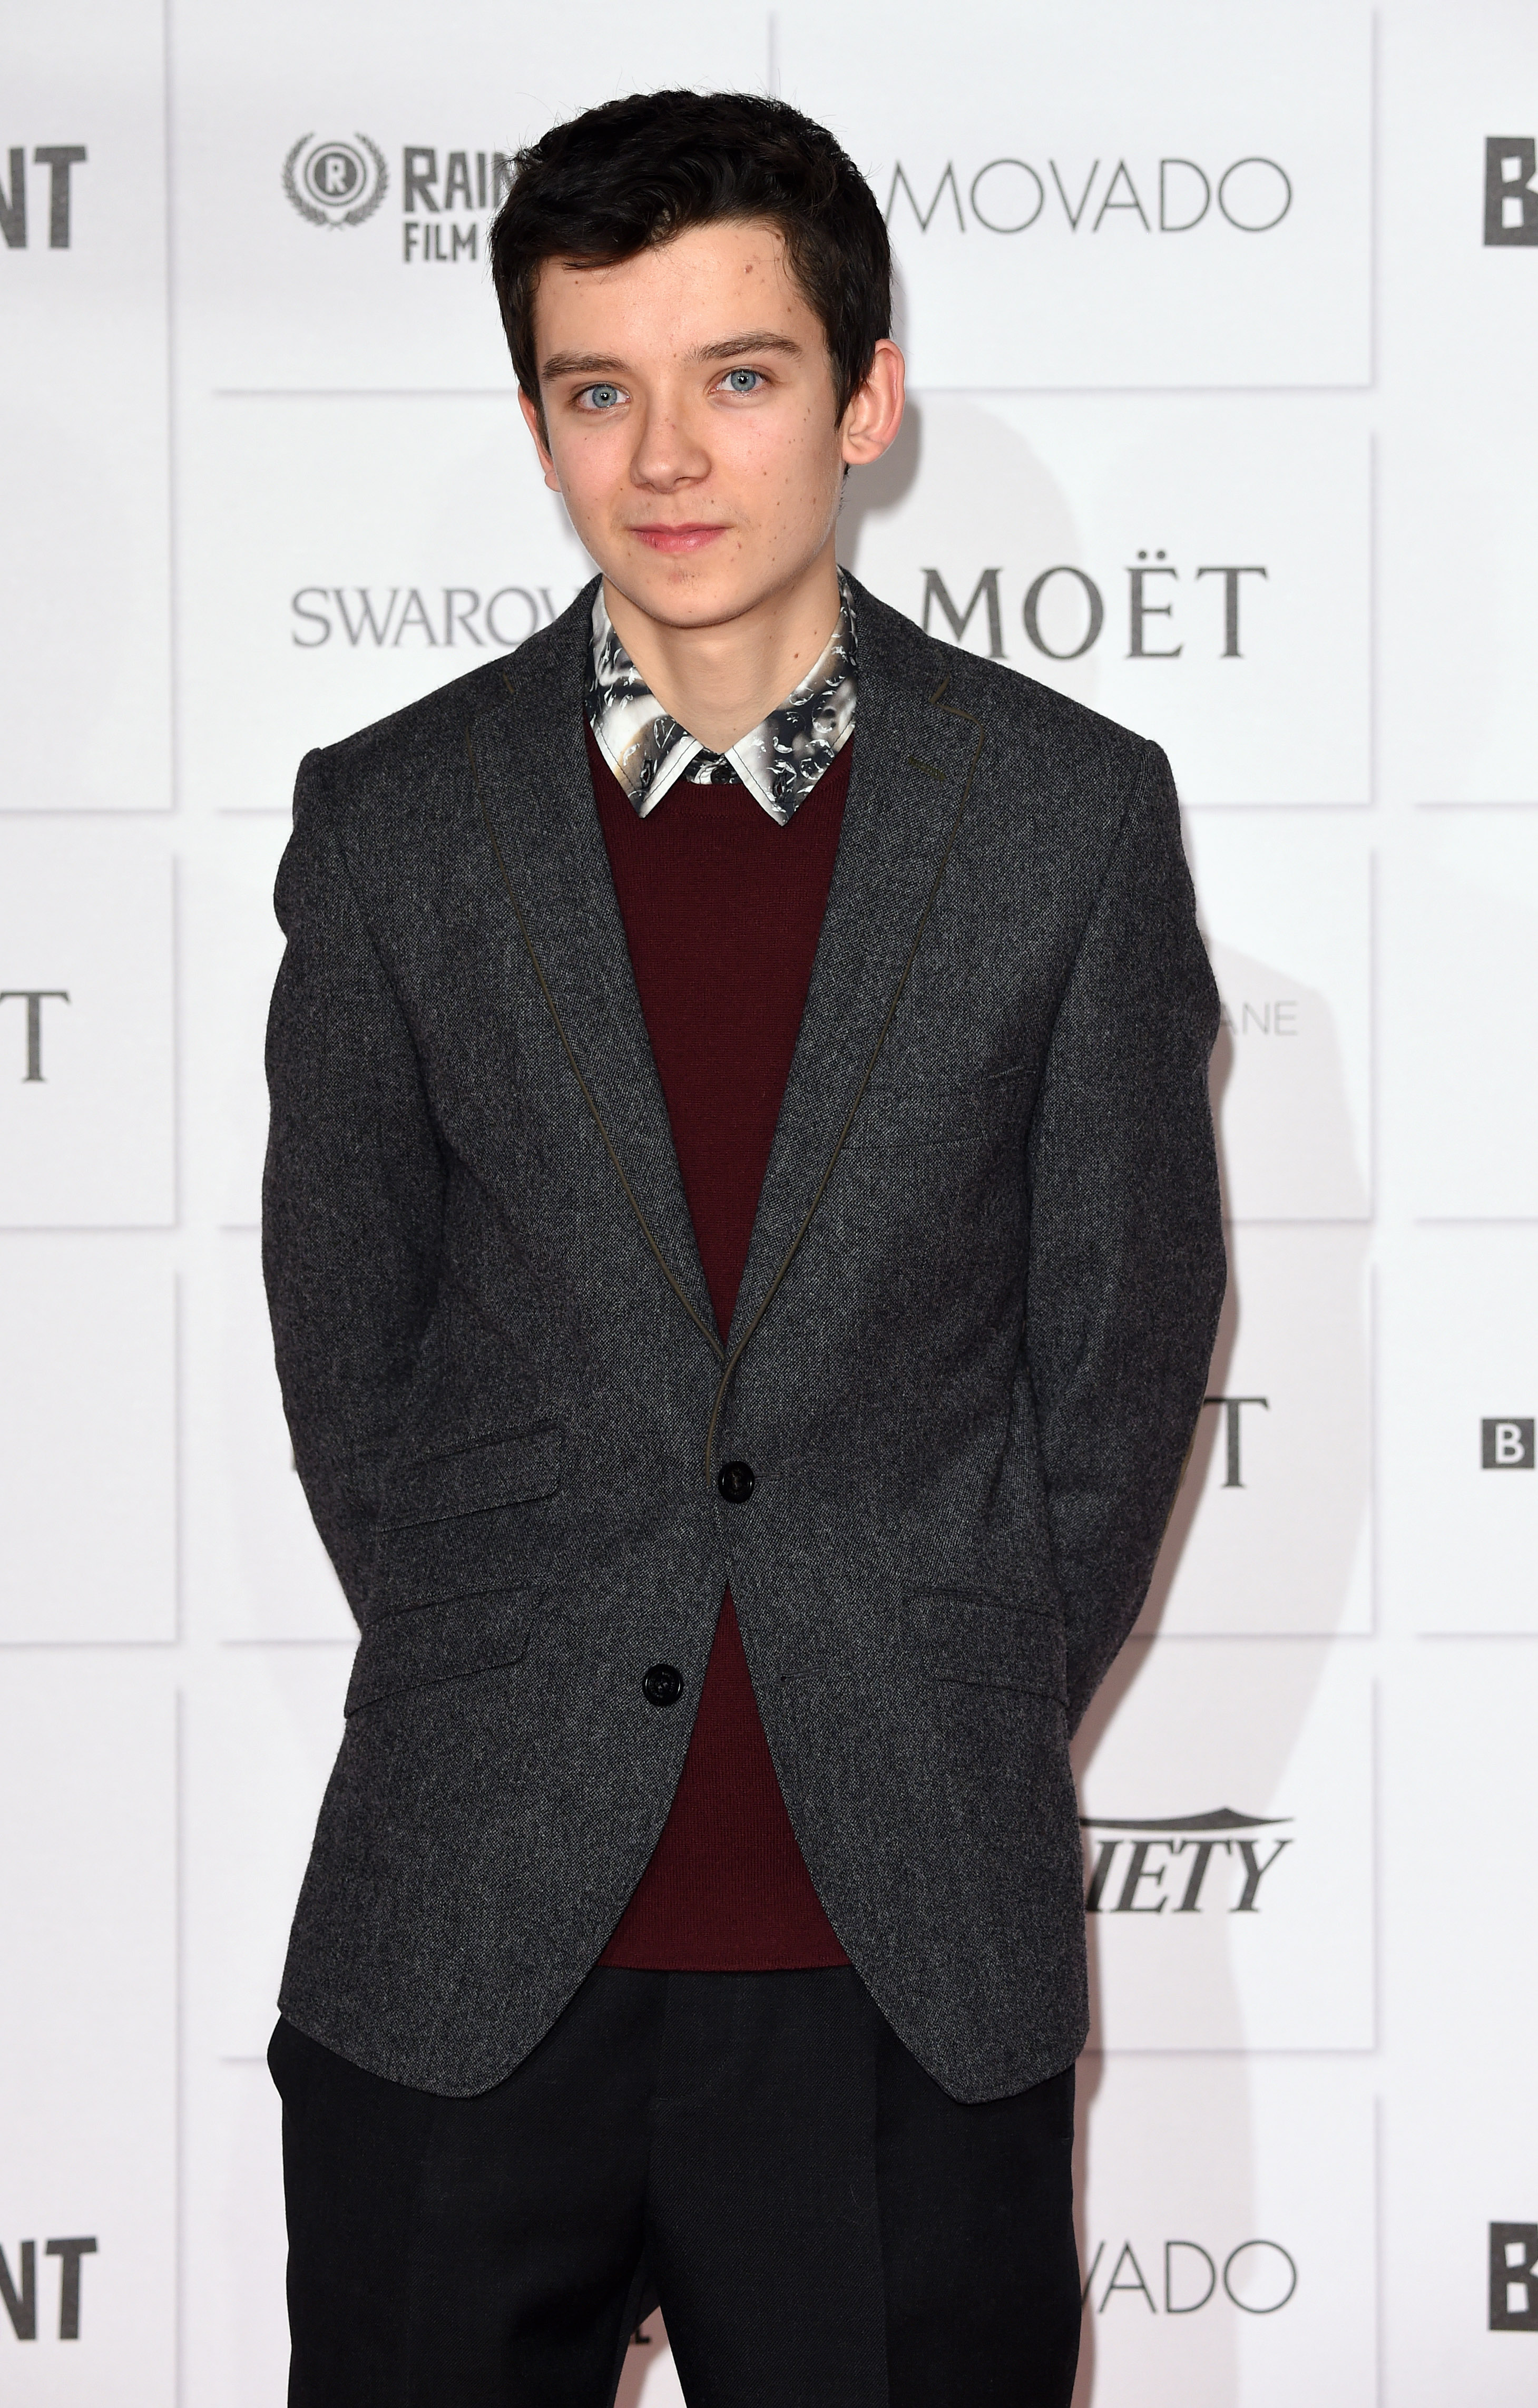 Asa Butterfield attends the Moet British Independent Film Awards on December 7, 2014 in London, England.